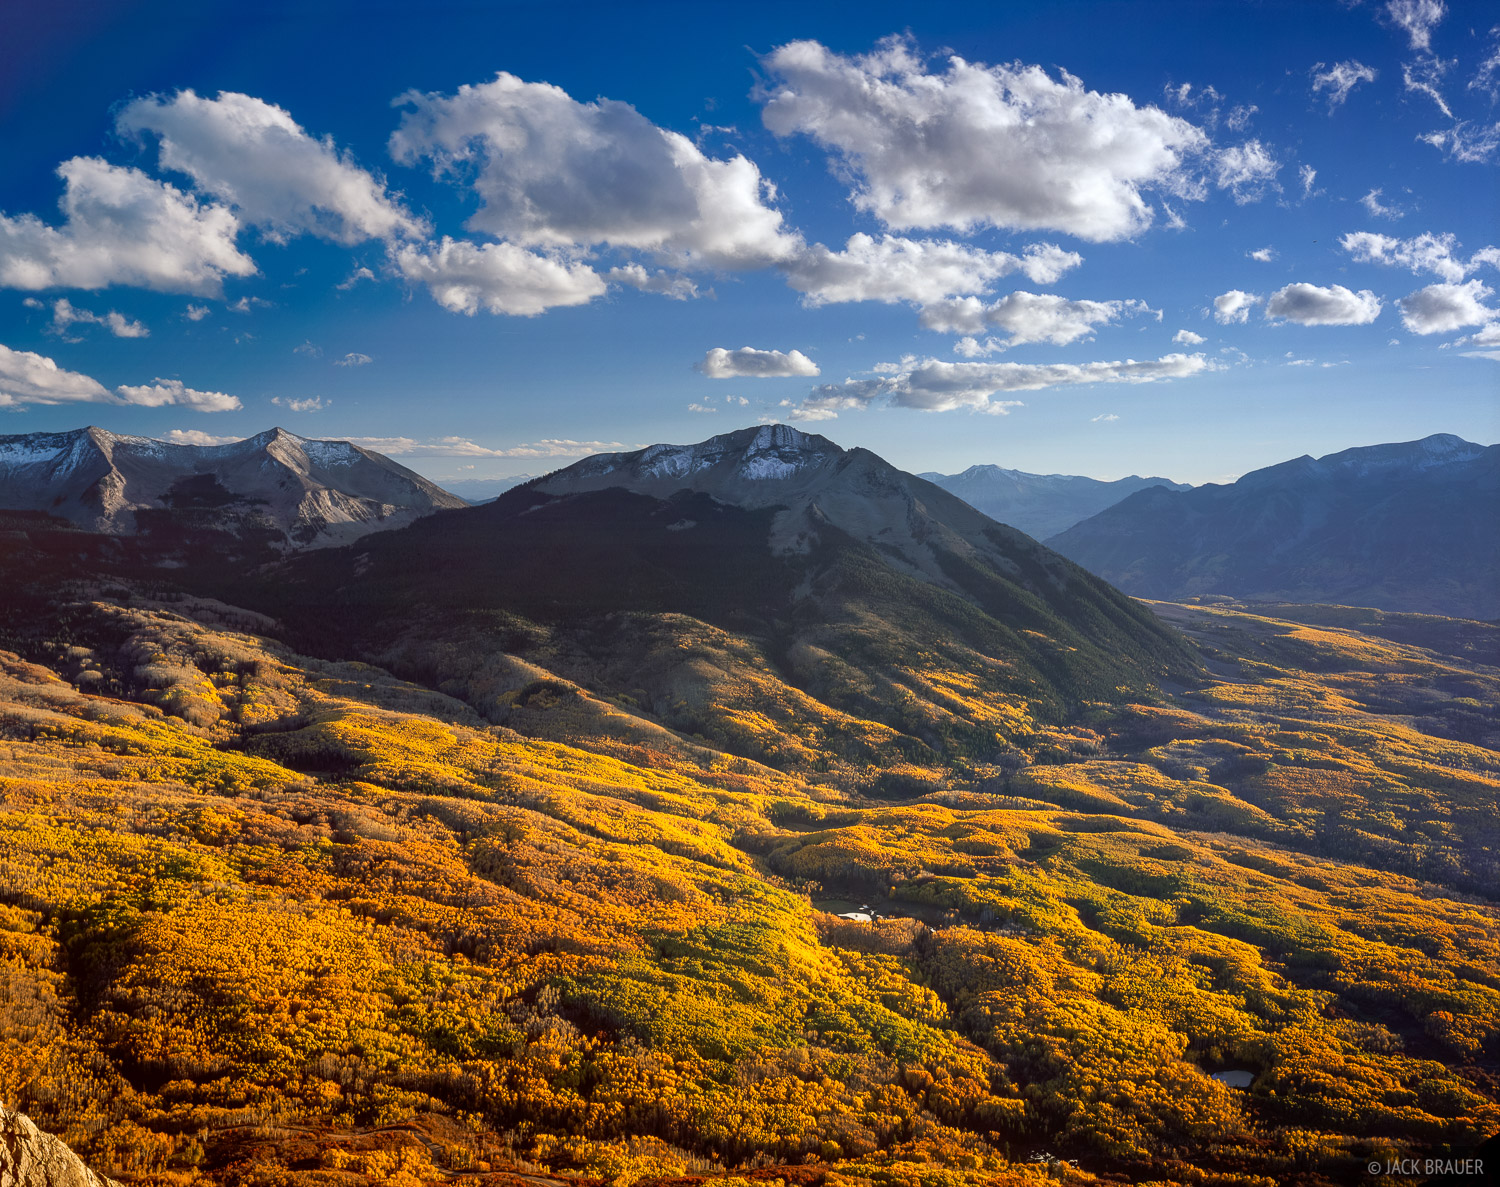 West Beckwith, aspens, Marcellina Mountain, Kebler Pass, Colorado, photo